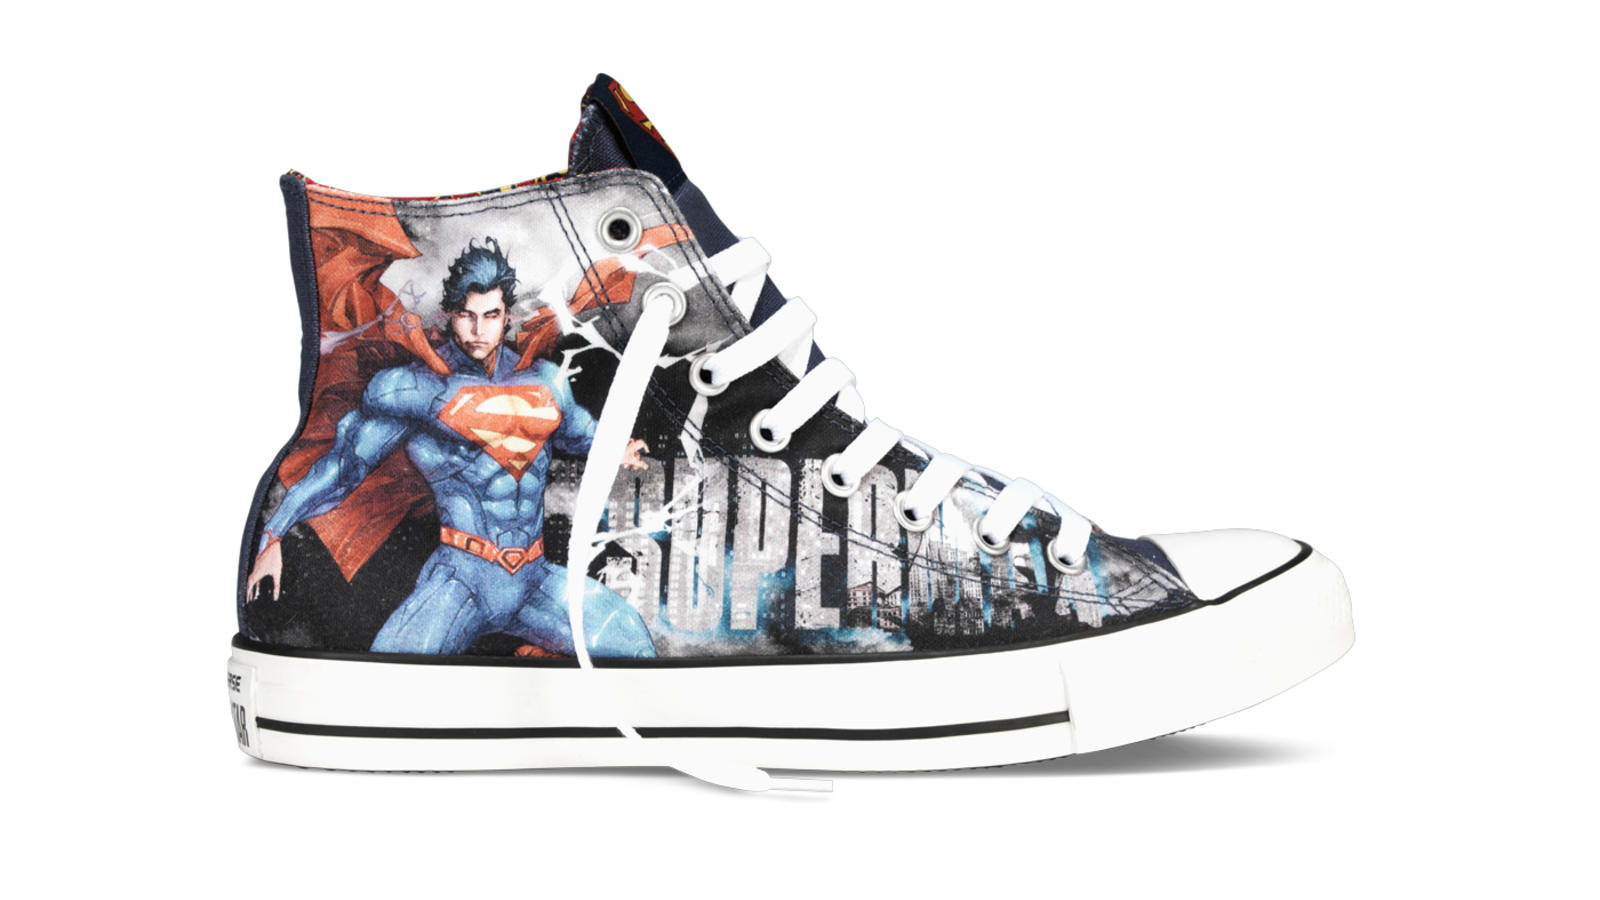 Converse Launches New Chuck Taylor All Star DC Comics